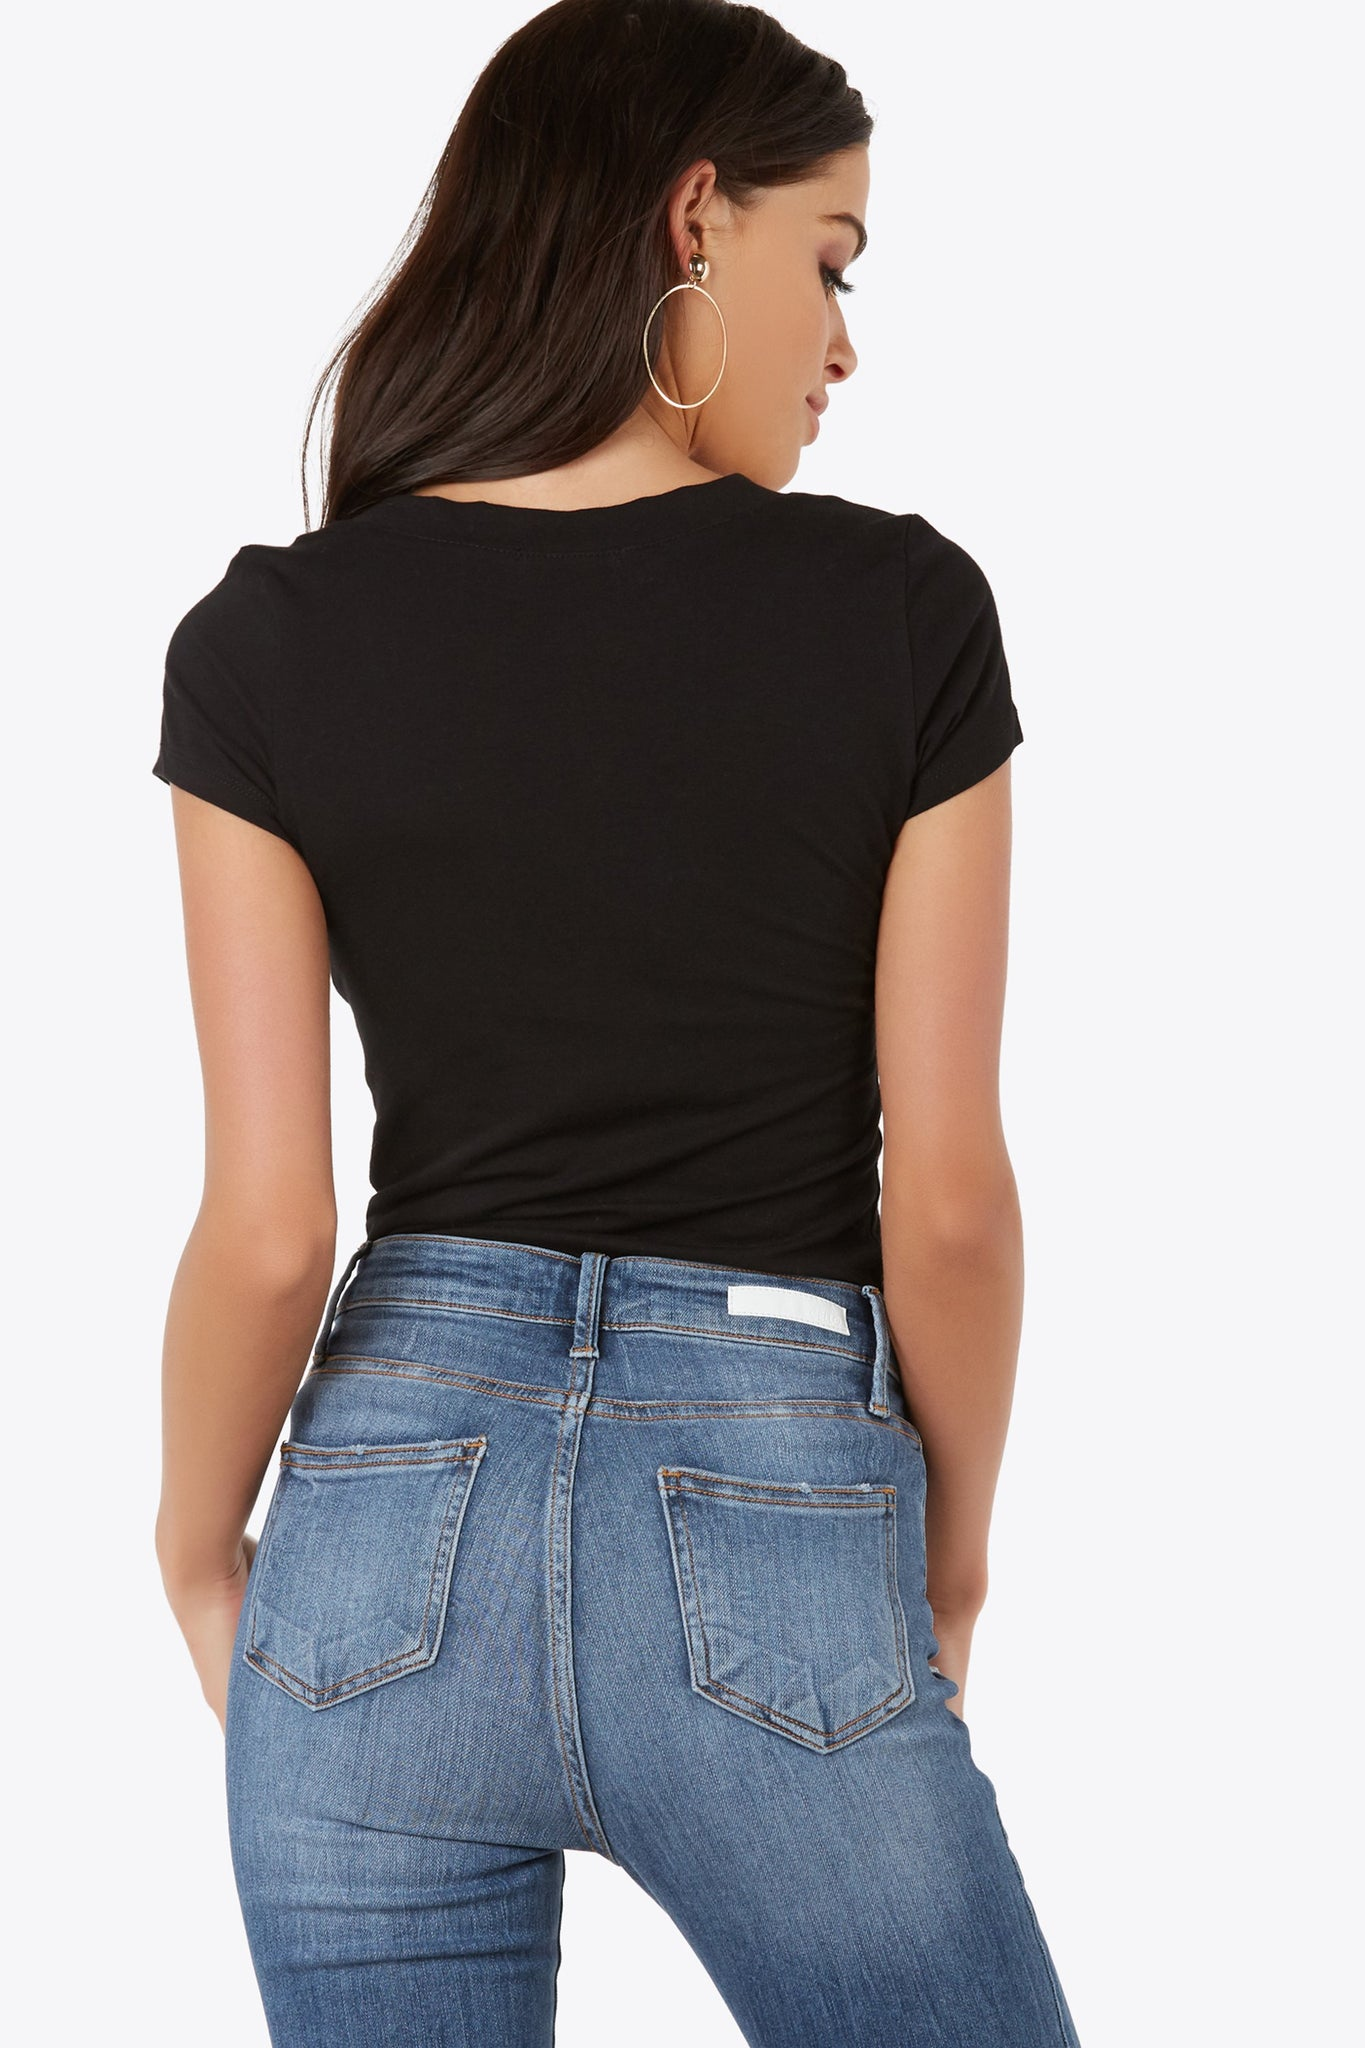 Add this staple top to any look, casual or chic. Short sleeve top with v-neckline.